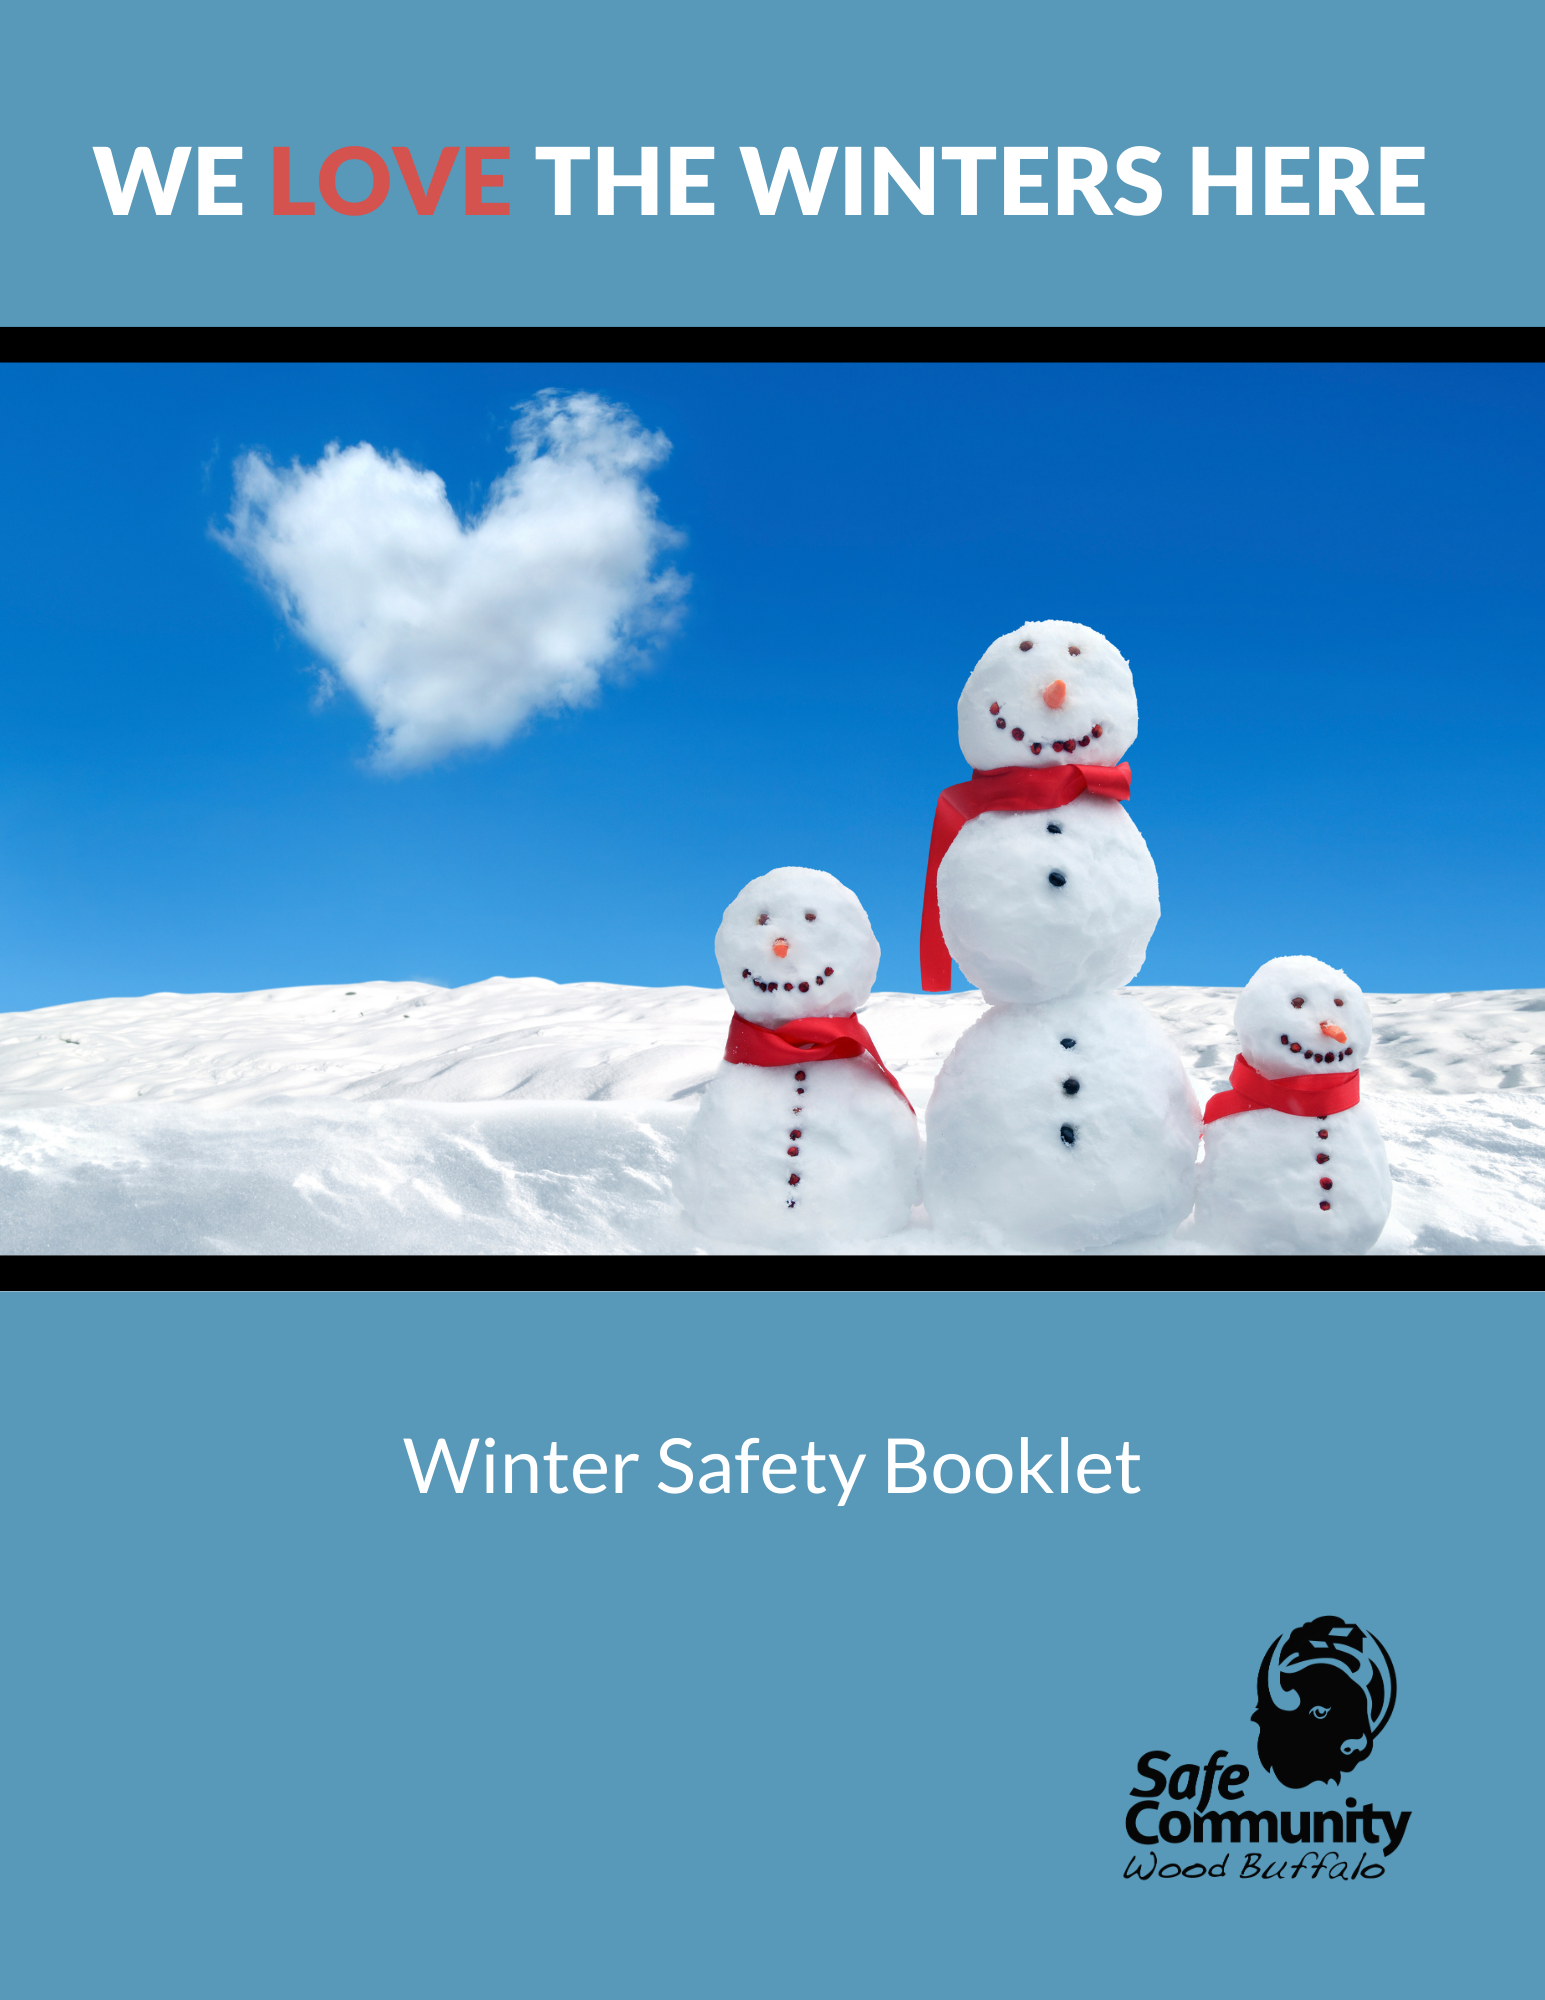 /Printable%20Winter%20Safety%20Booklet